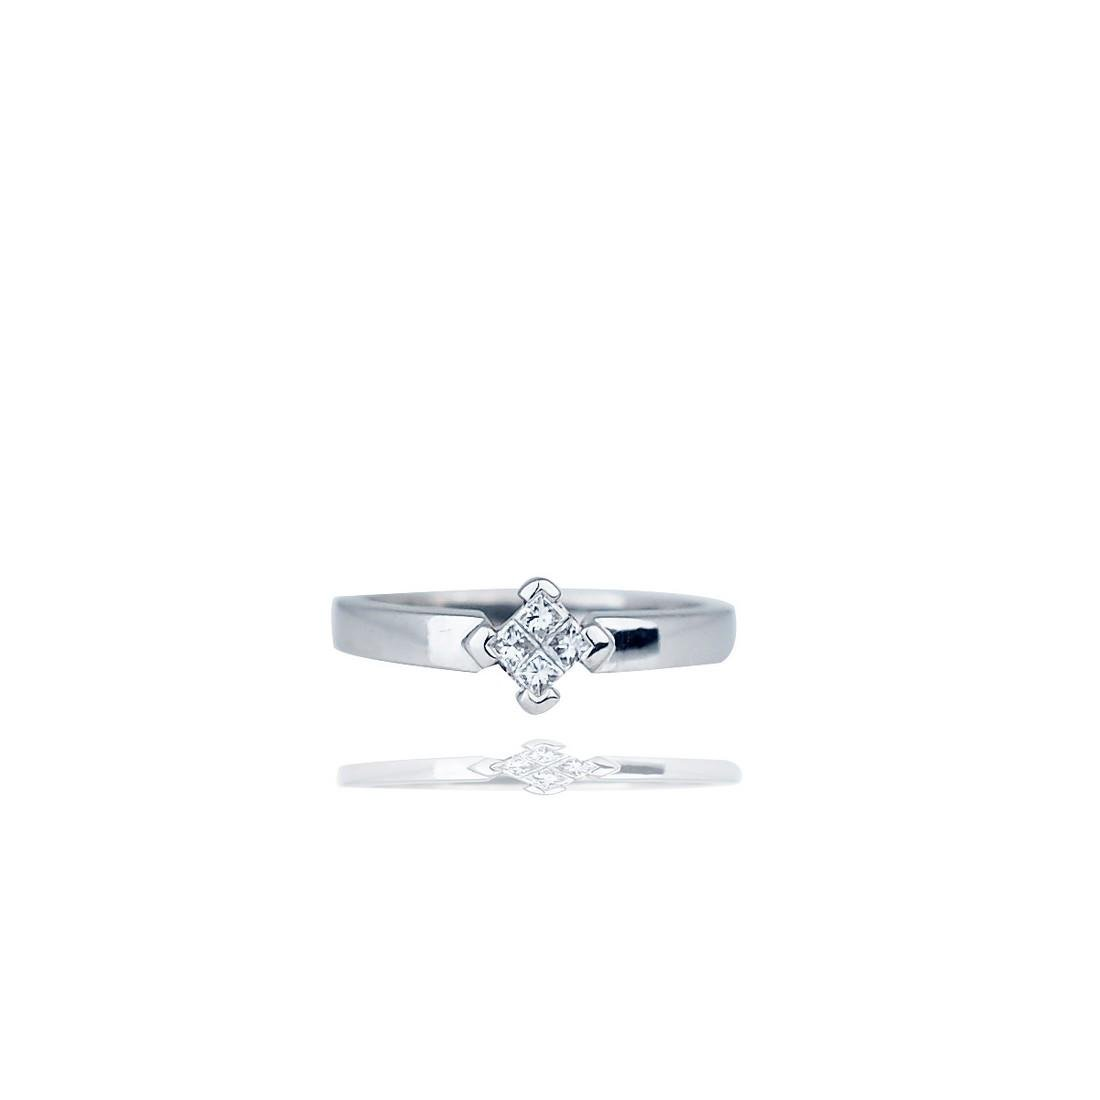 Invisible Diamond Princess Band Ring, 18Kt, ¼ Carat